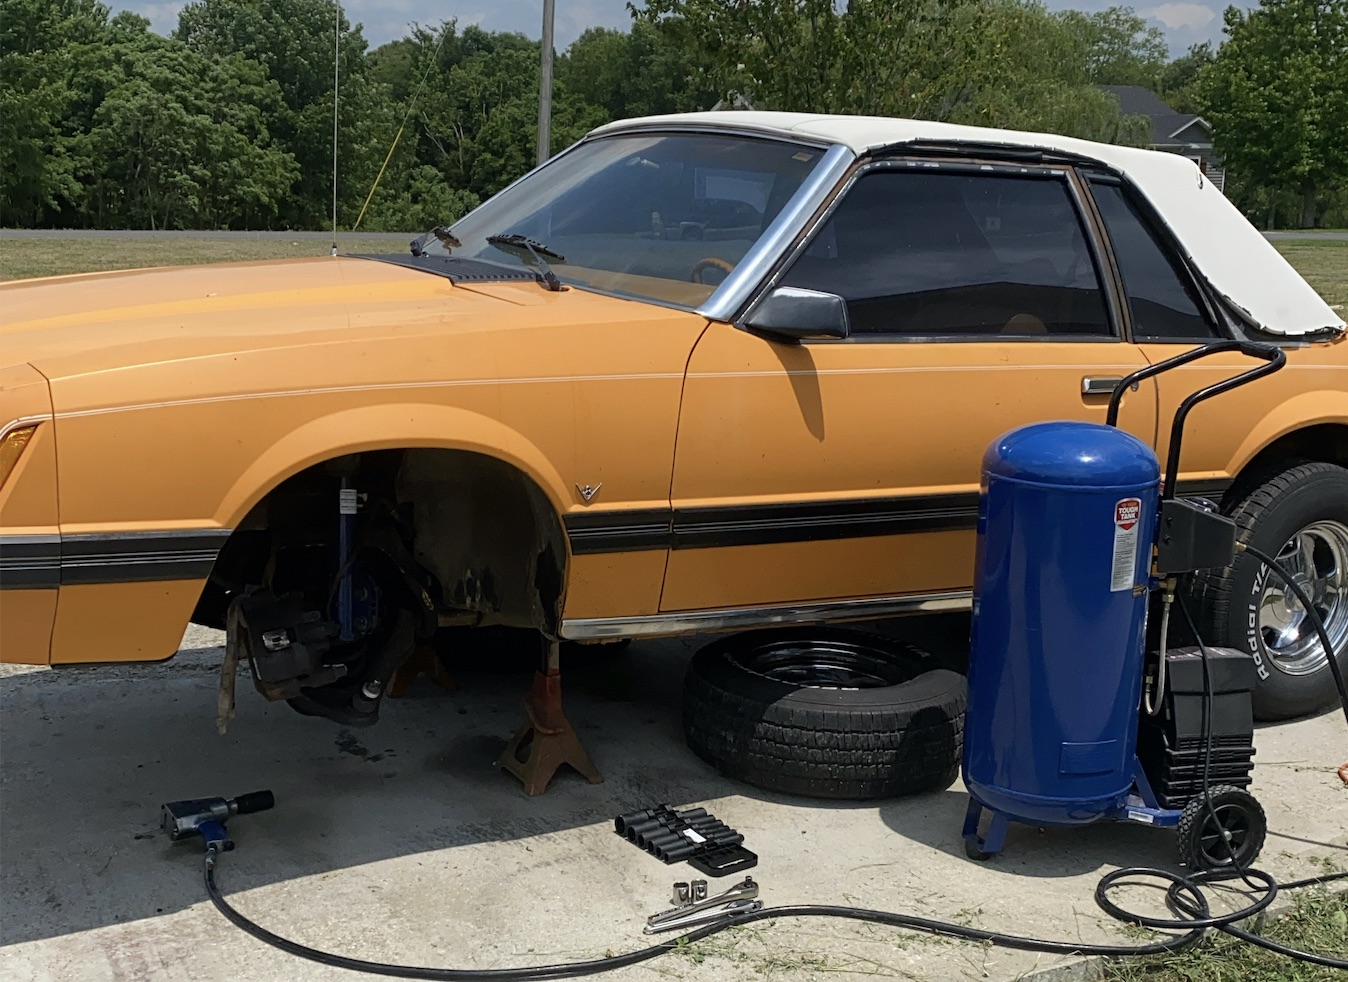 Project Great Pumpkin Mustang: The PITA Front Suspension Drama